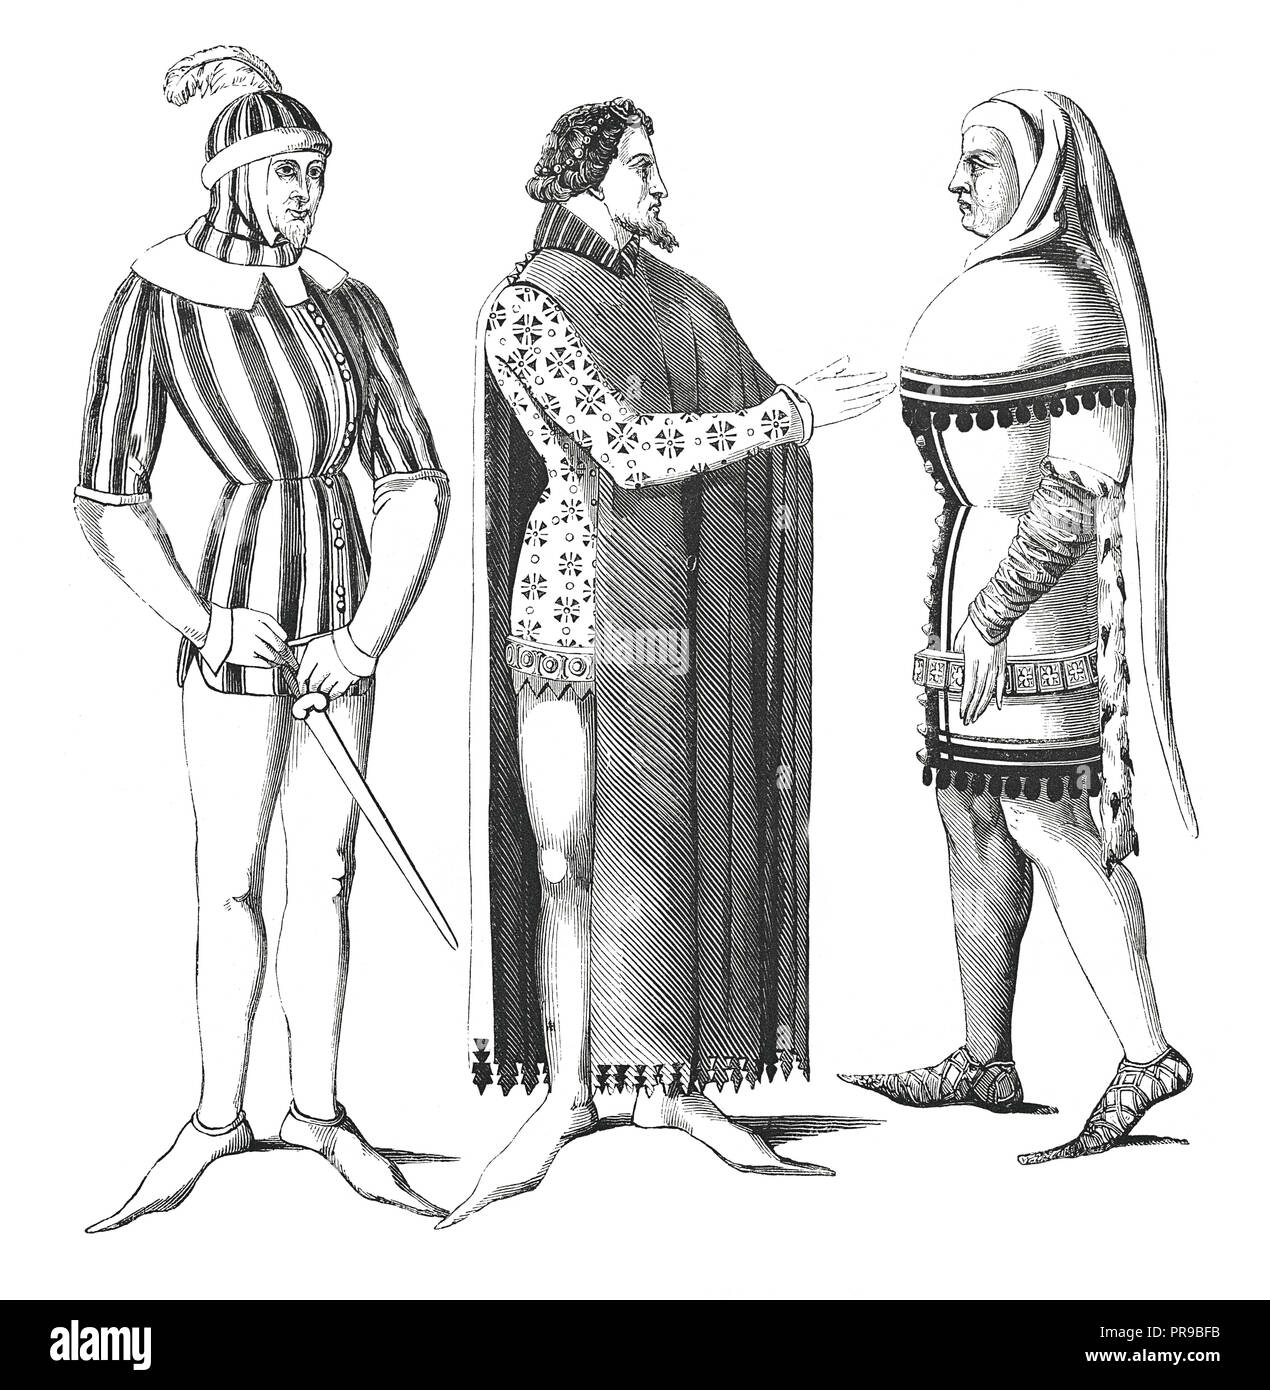 19th century illustration of Lords' costumes, room and city - Miniatures from between 1360-1365. Original artwork published in Le magasin Pittoresque  - Stock Image